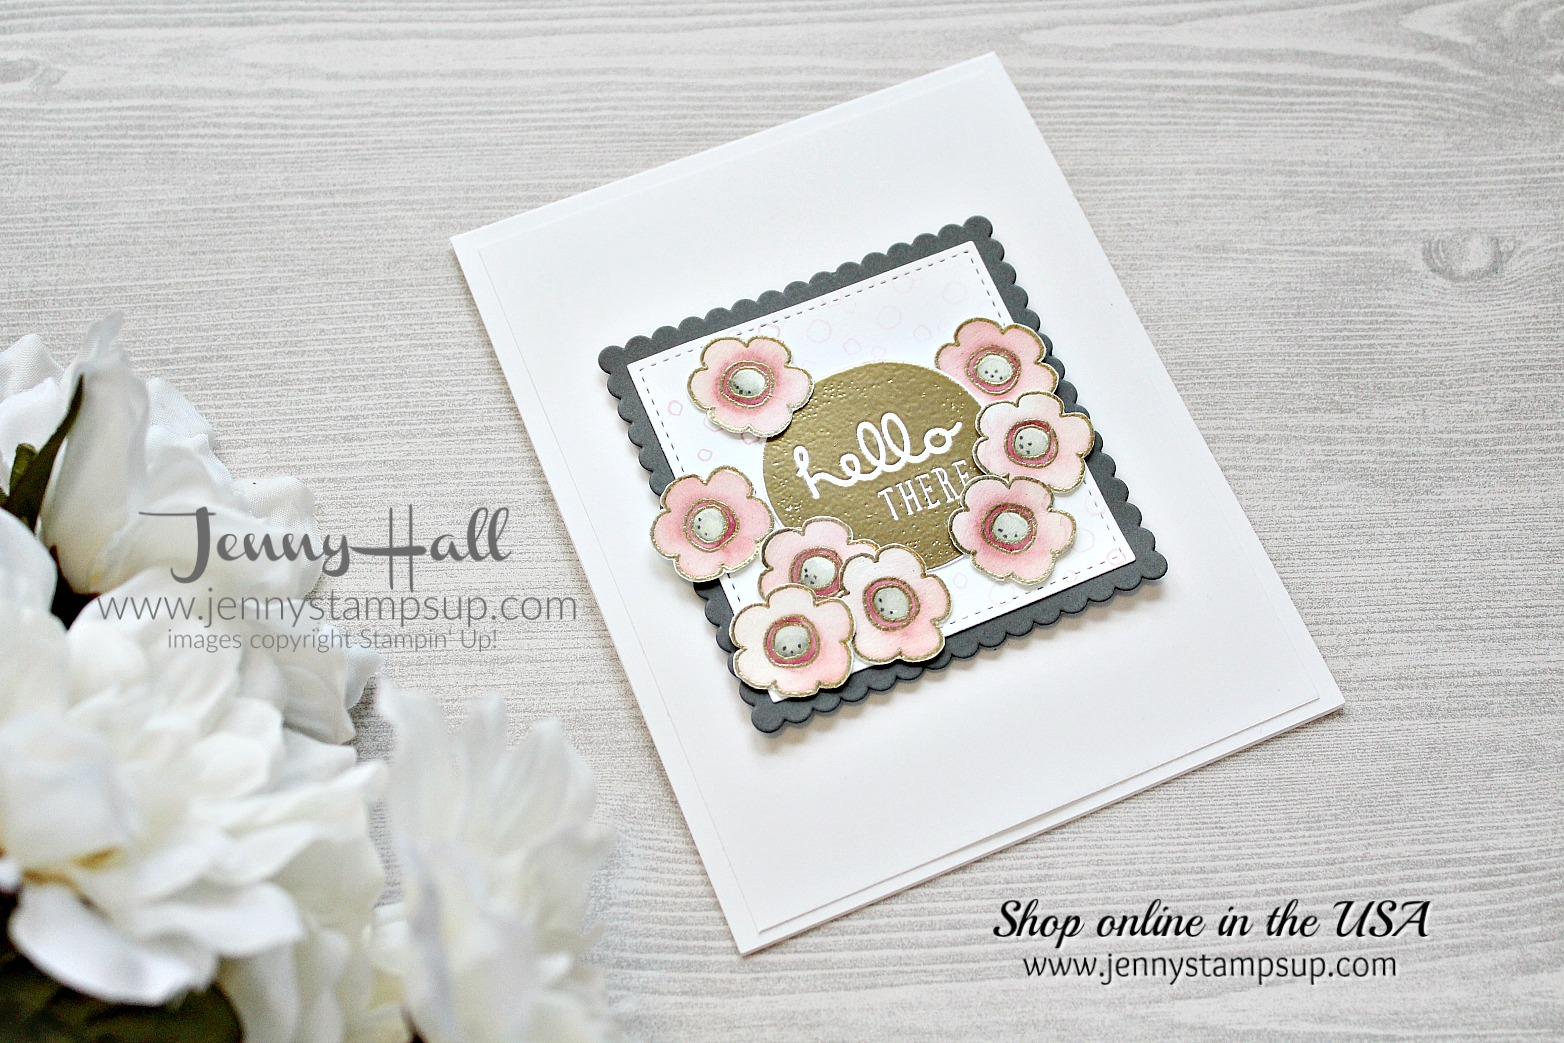 The Beauty and the Beast of Pieces & Patterns stamp set by Jenny Hall using #stampinup products at www.jennyhalldesign.com for #cardmaking #videotutorials #scrapbooking #piecesandpatterns #jennystampsup #jennyhalldesign #jennyhallstampinup and more!